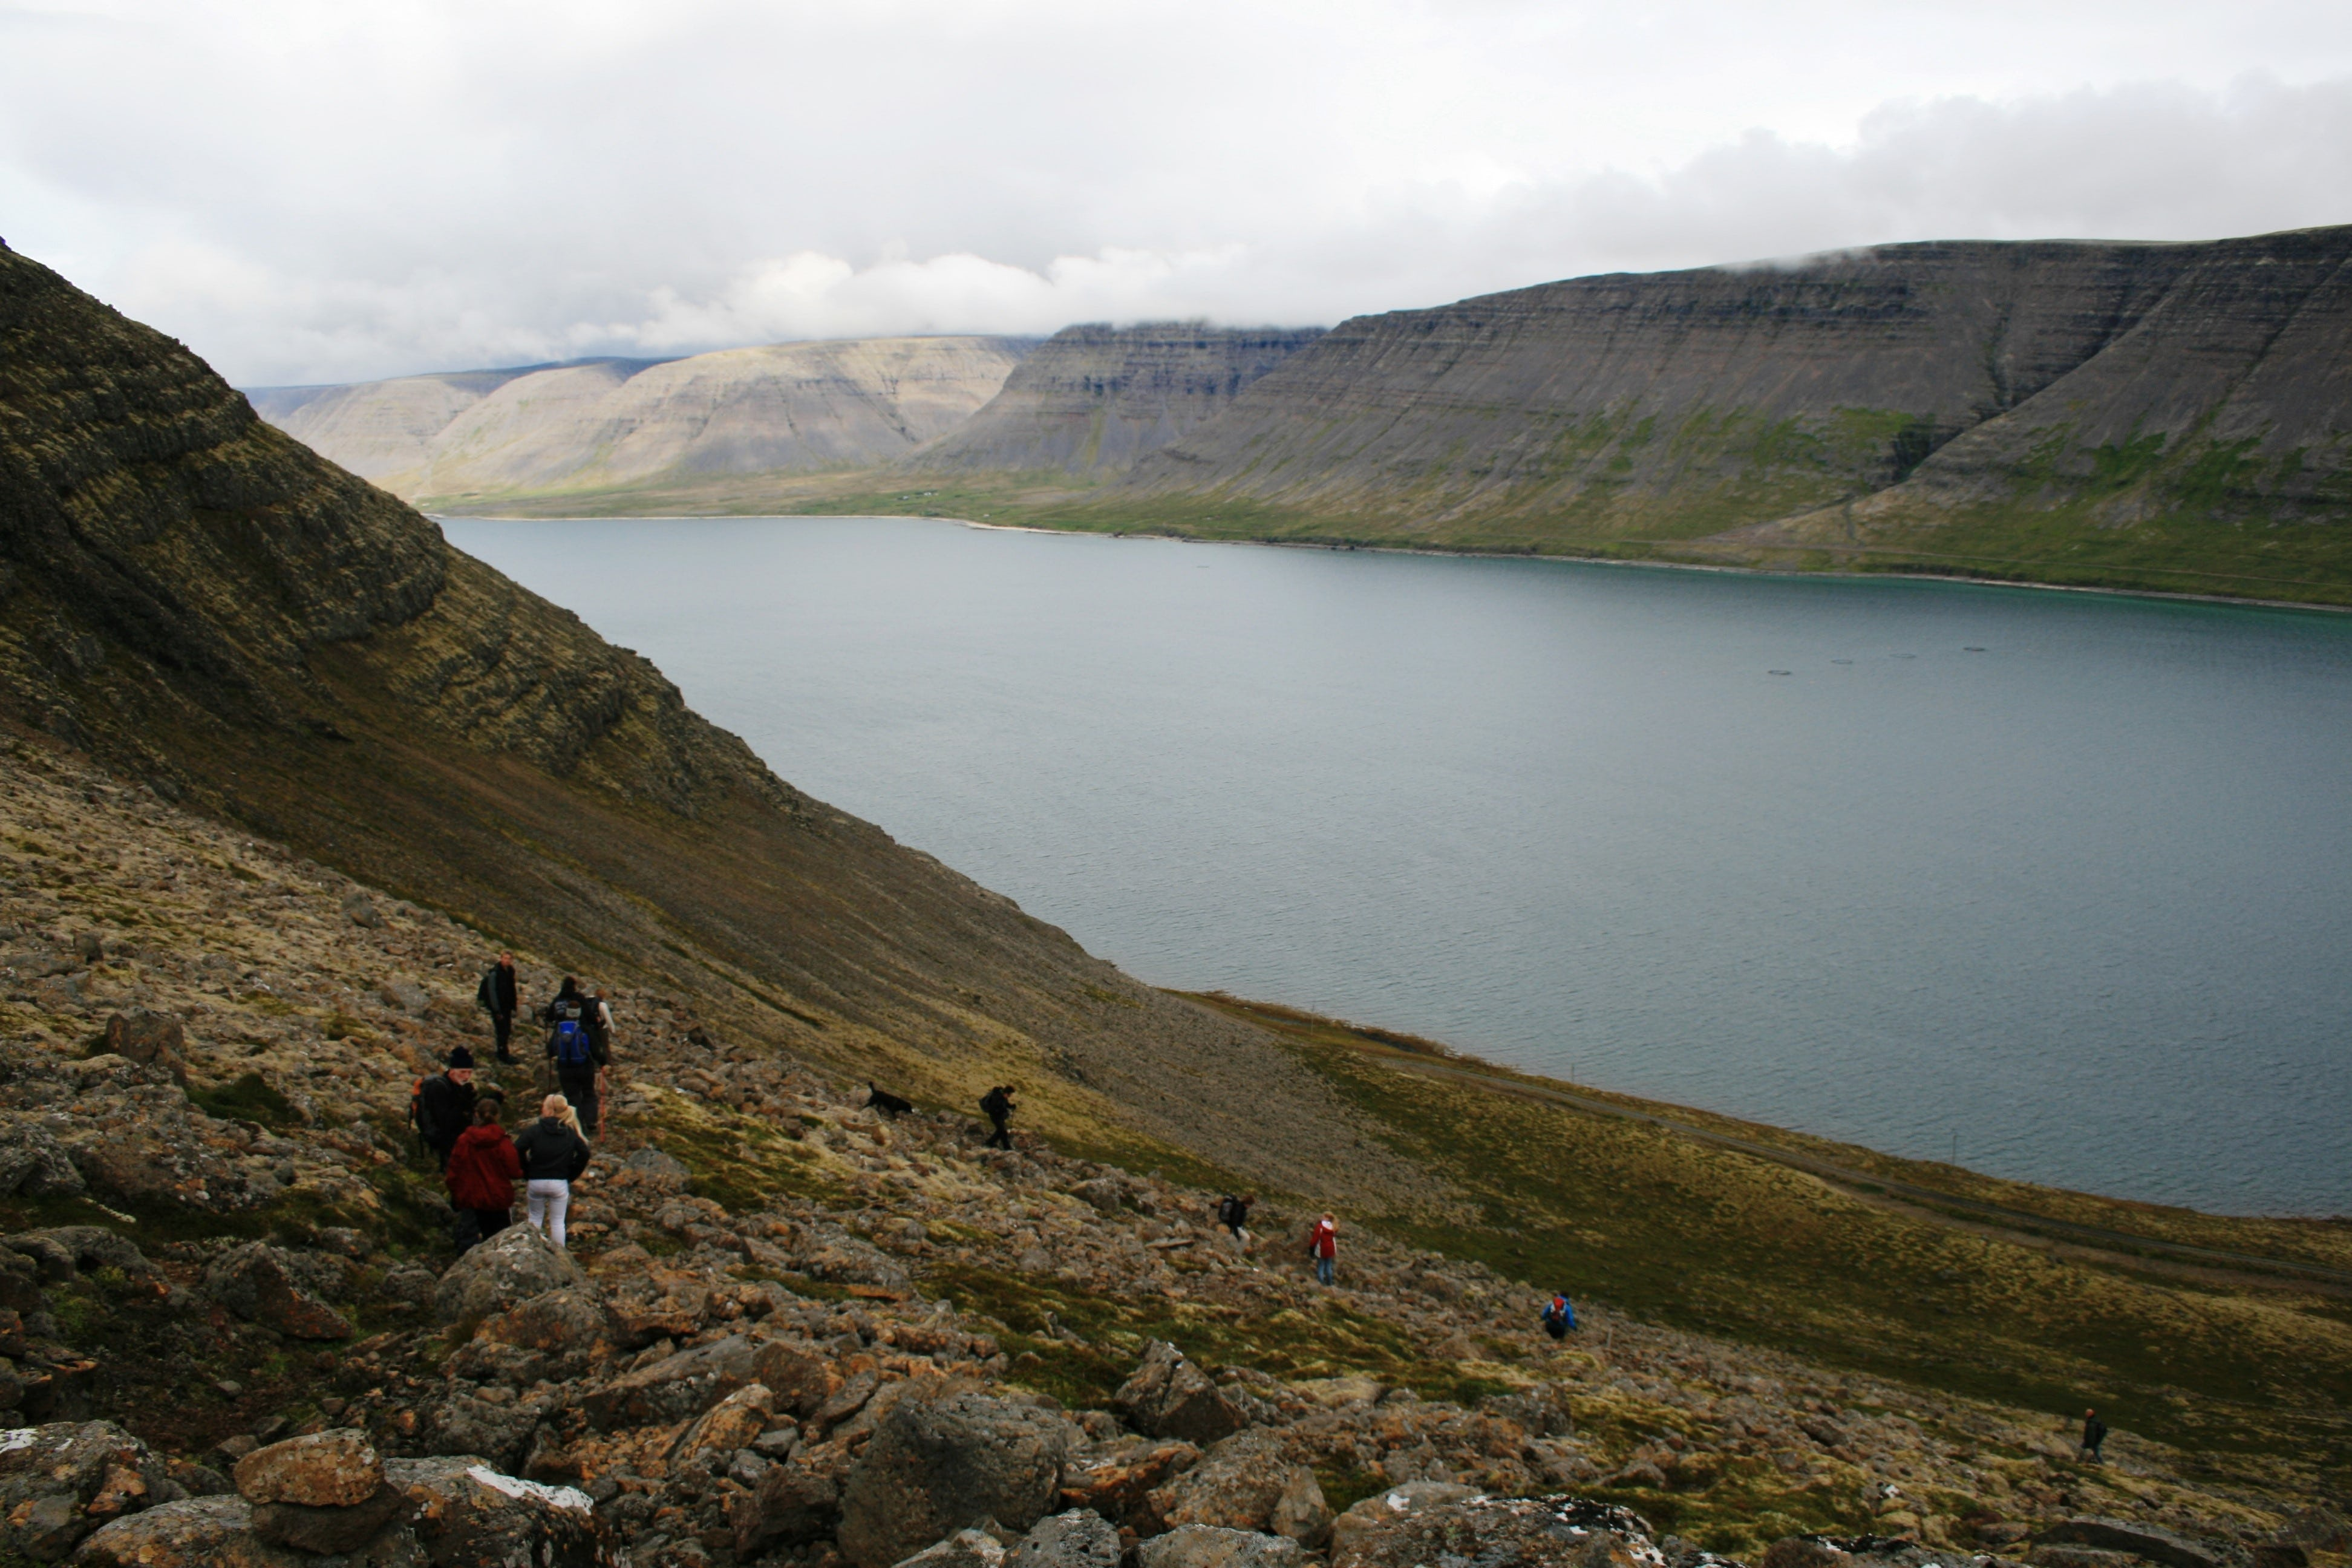 When hiking between the two western fjords of Patreksfjörður and Tálknafjörður, you are guaranteed stunning views of steep mountains rising above the ocean.